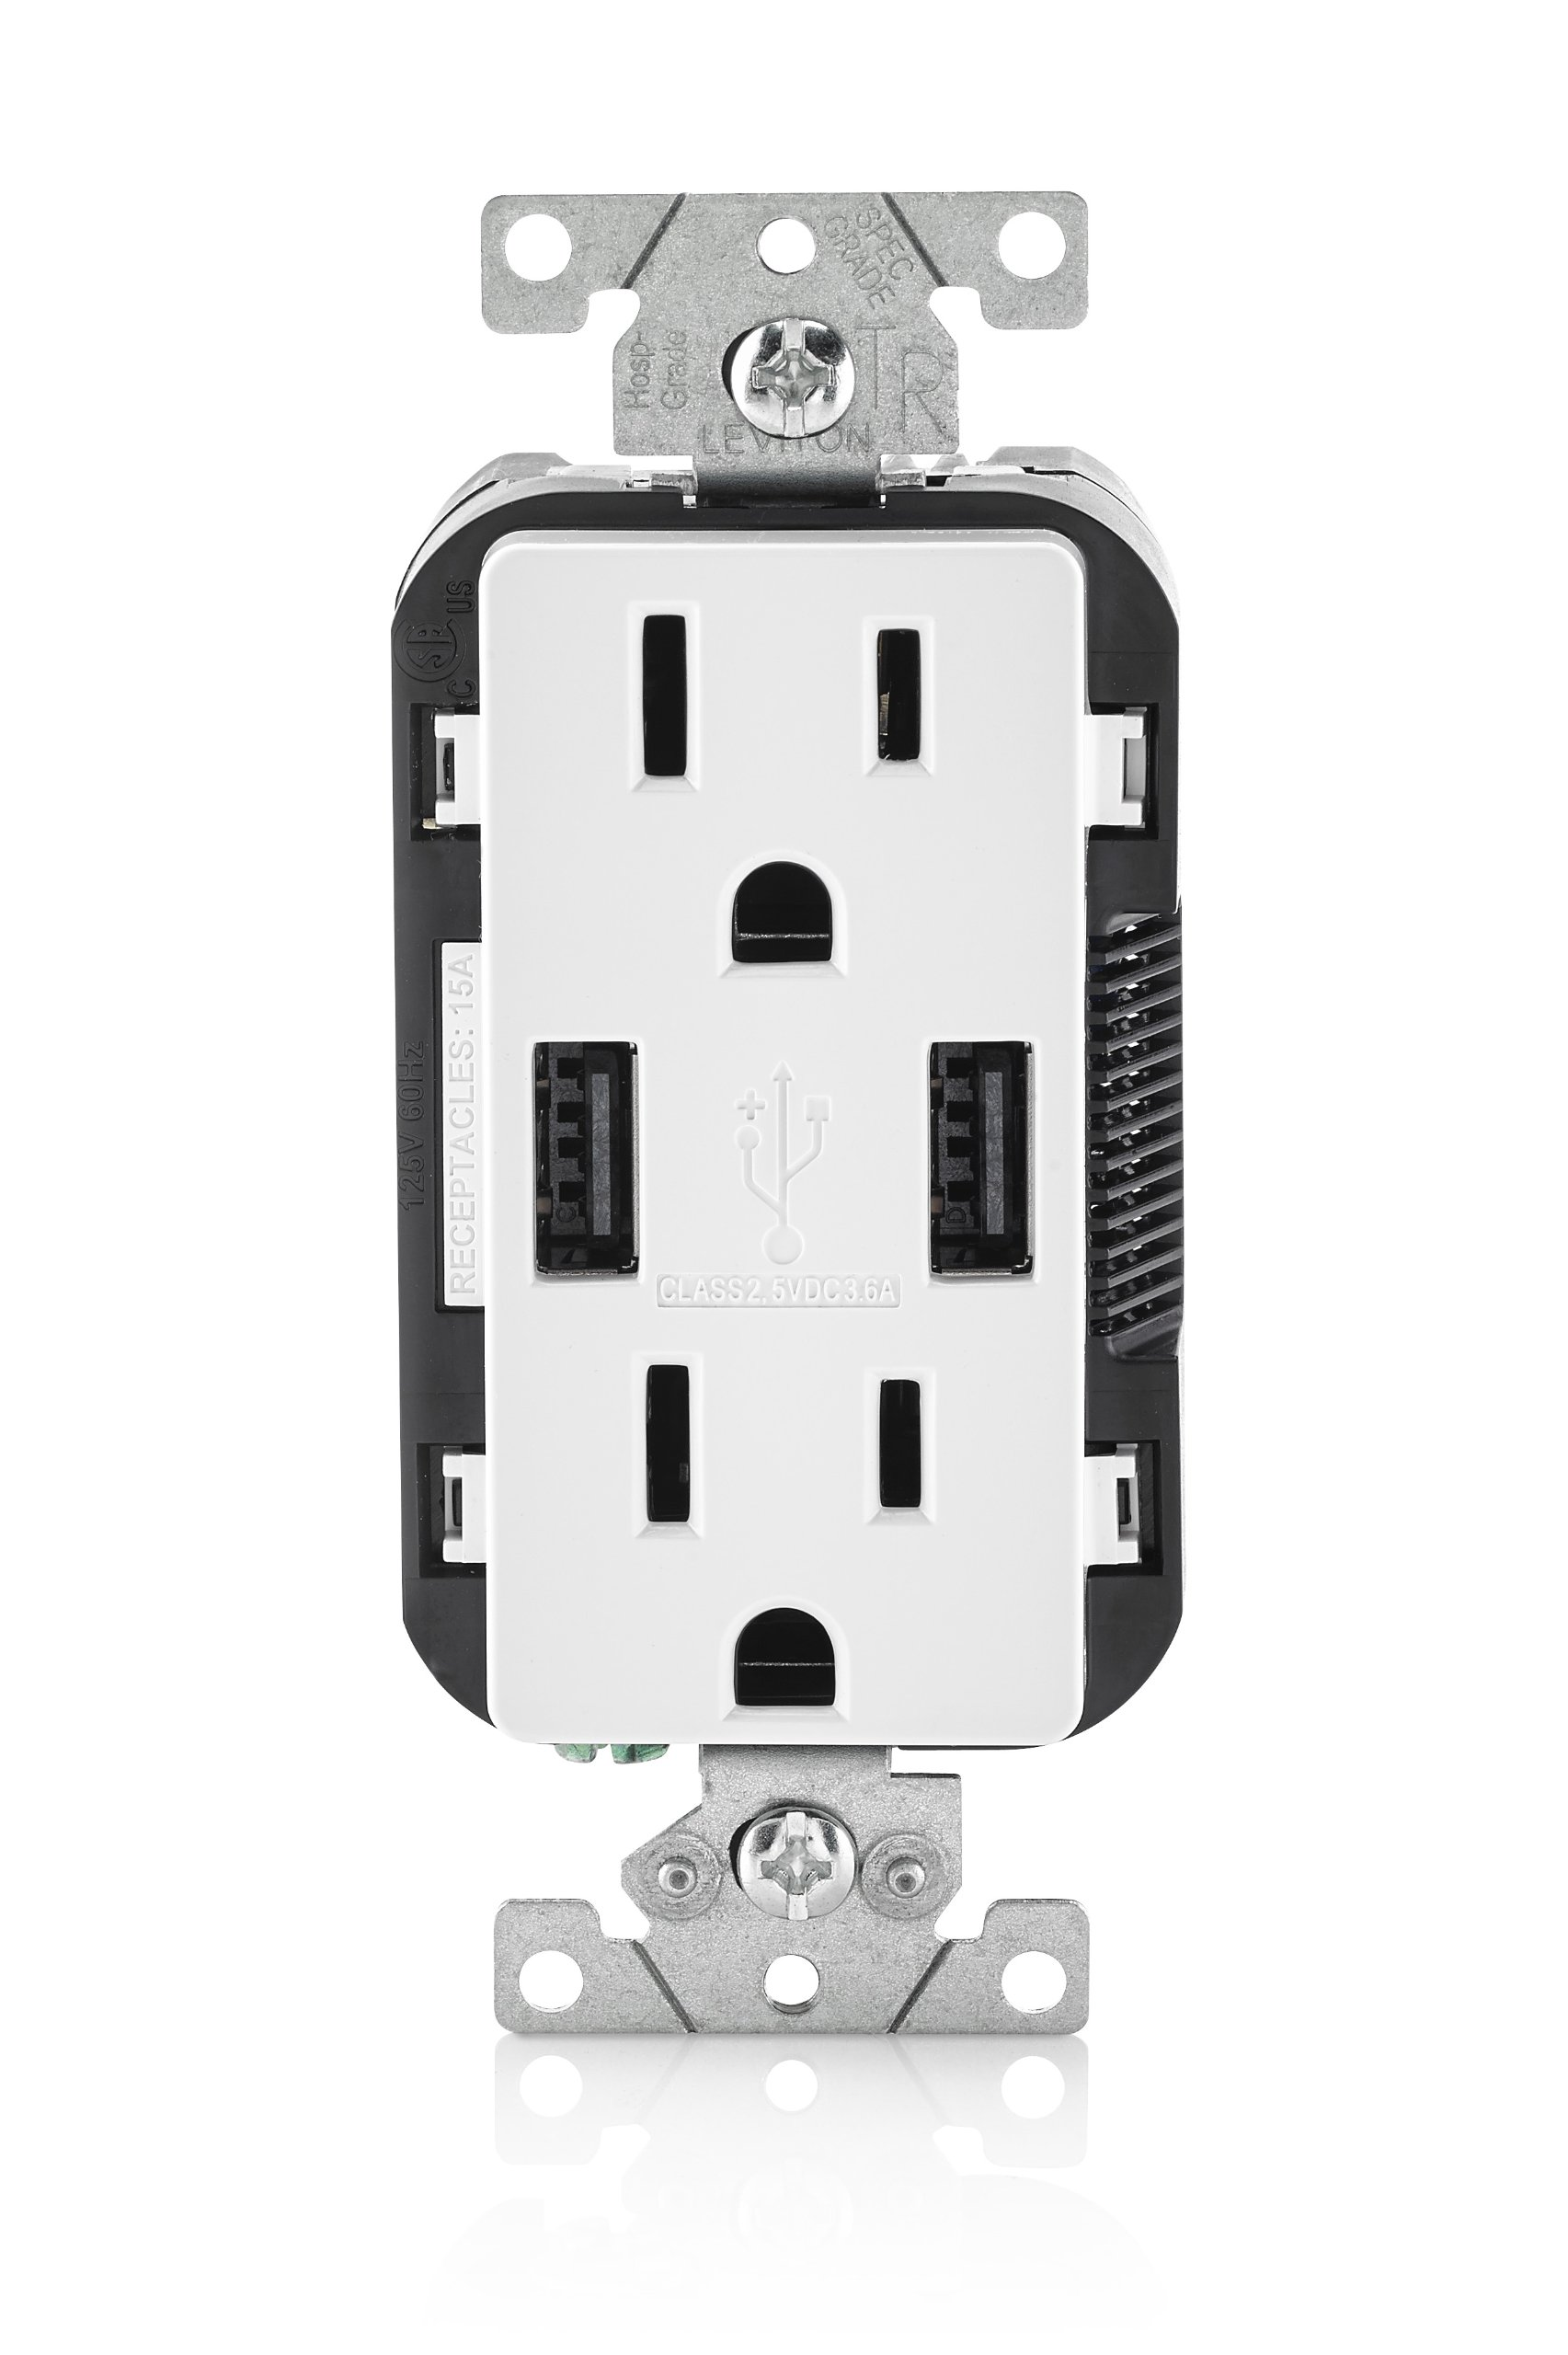 Leviton T5632-W 15-Amp USB Charger/Tamper Resistant Duplex Receptacle, White